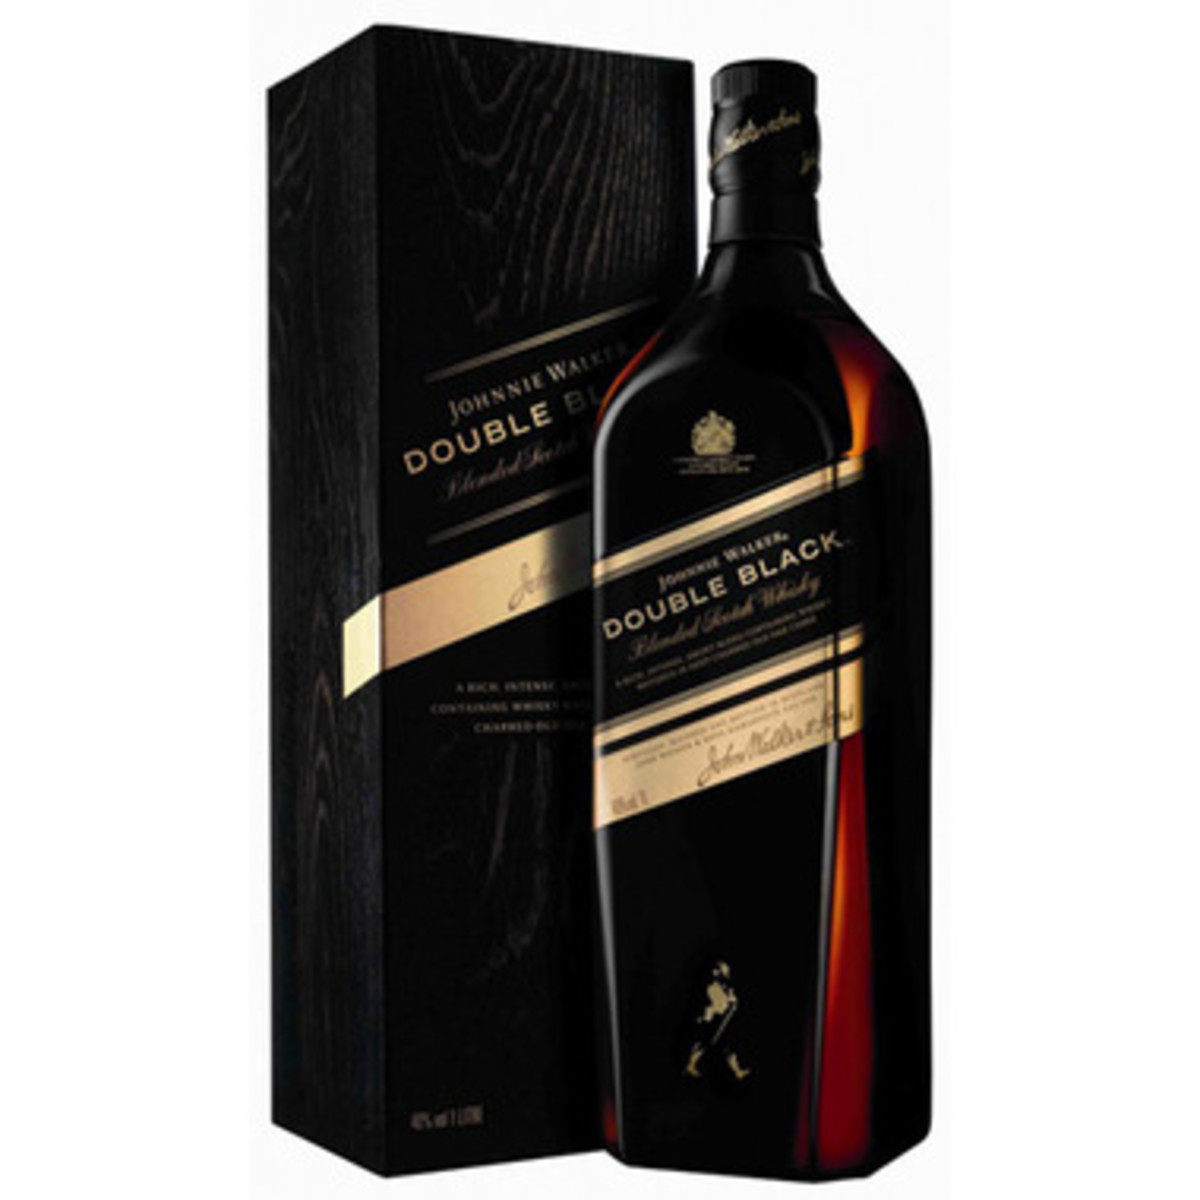 Originally released to the travel retail market, Johnnie Walker Double Black incorporates more charred casks than the classic Black Label. This gives the whisky a smokier taste, while keeping all the sophistication of the classic Johnnie Walker. .